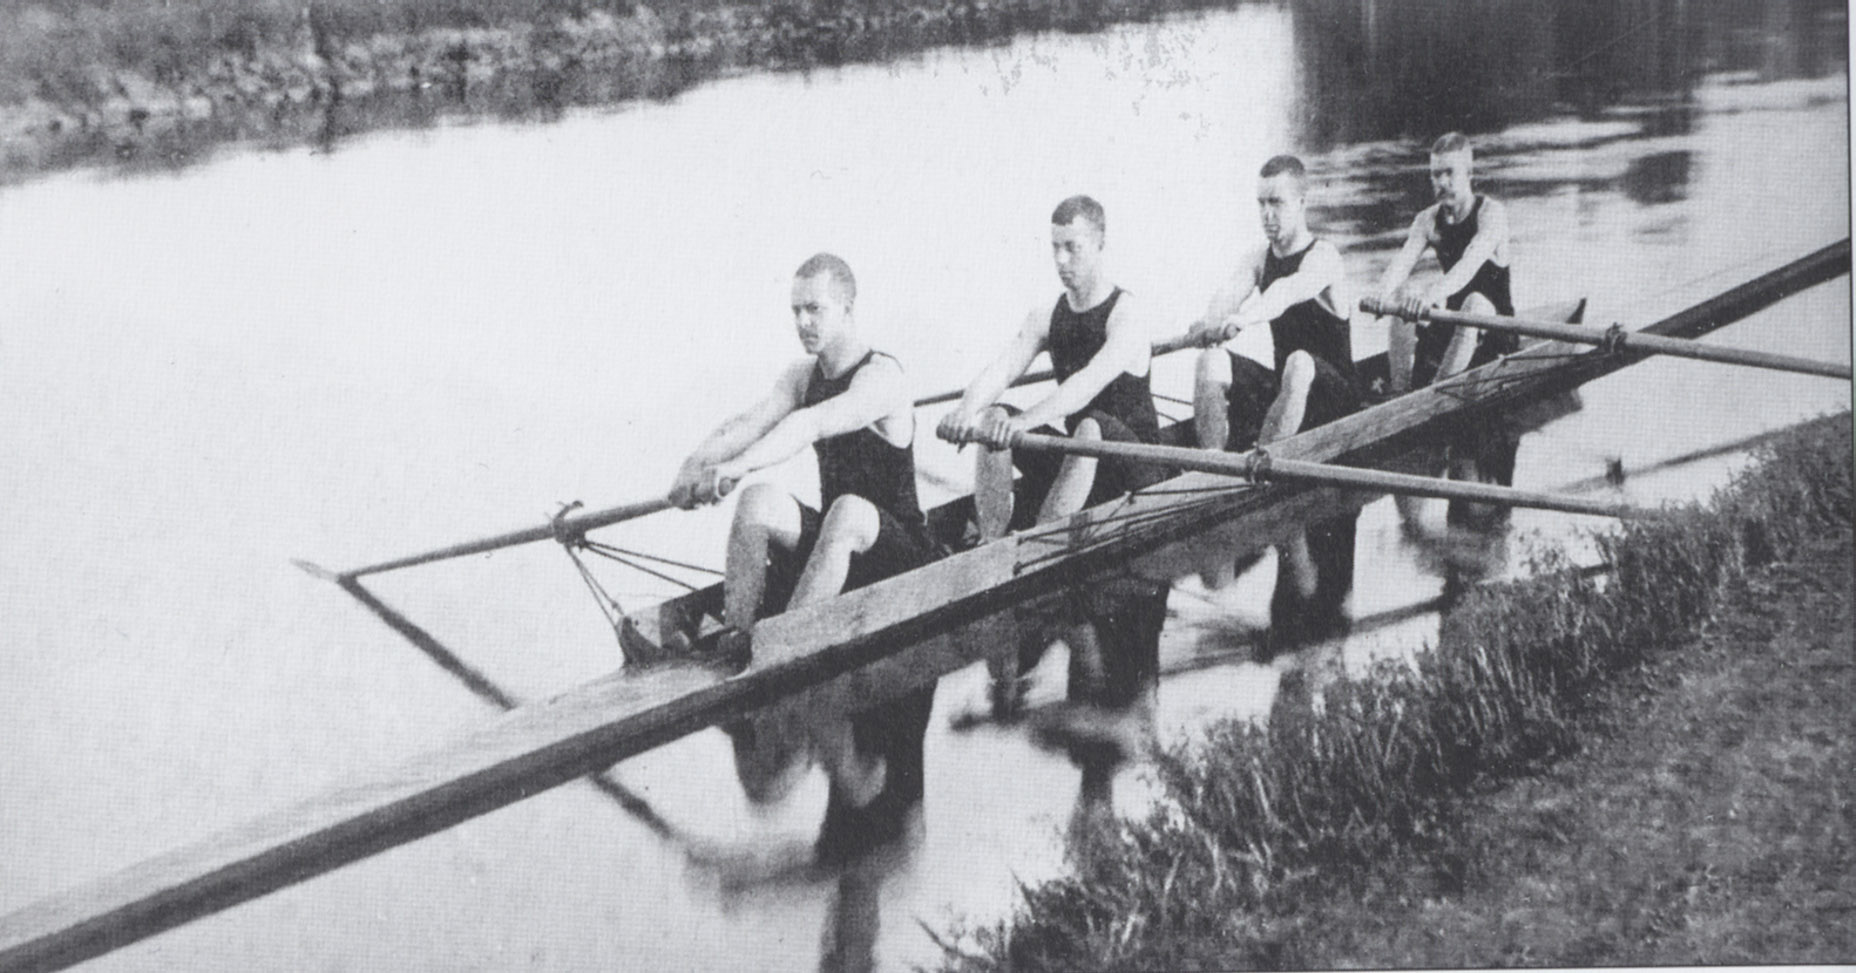 Rowers from Princeton University practicing in the Delaware and Raritan Canal prior to the creation of Lake Carnegie. The team's racing shells were stored in a boat house located immediately north of Bridge No. 15 at Washington Road.  (Photograph reproduced courtesy of the Princeton University Archives)